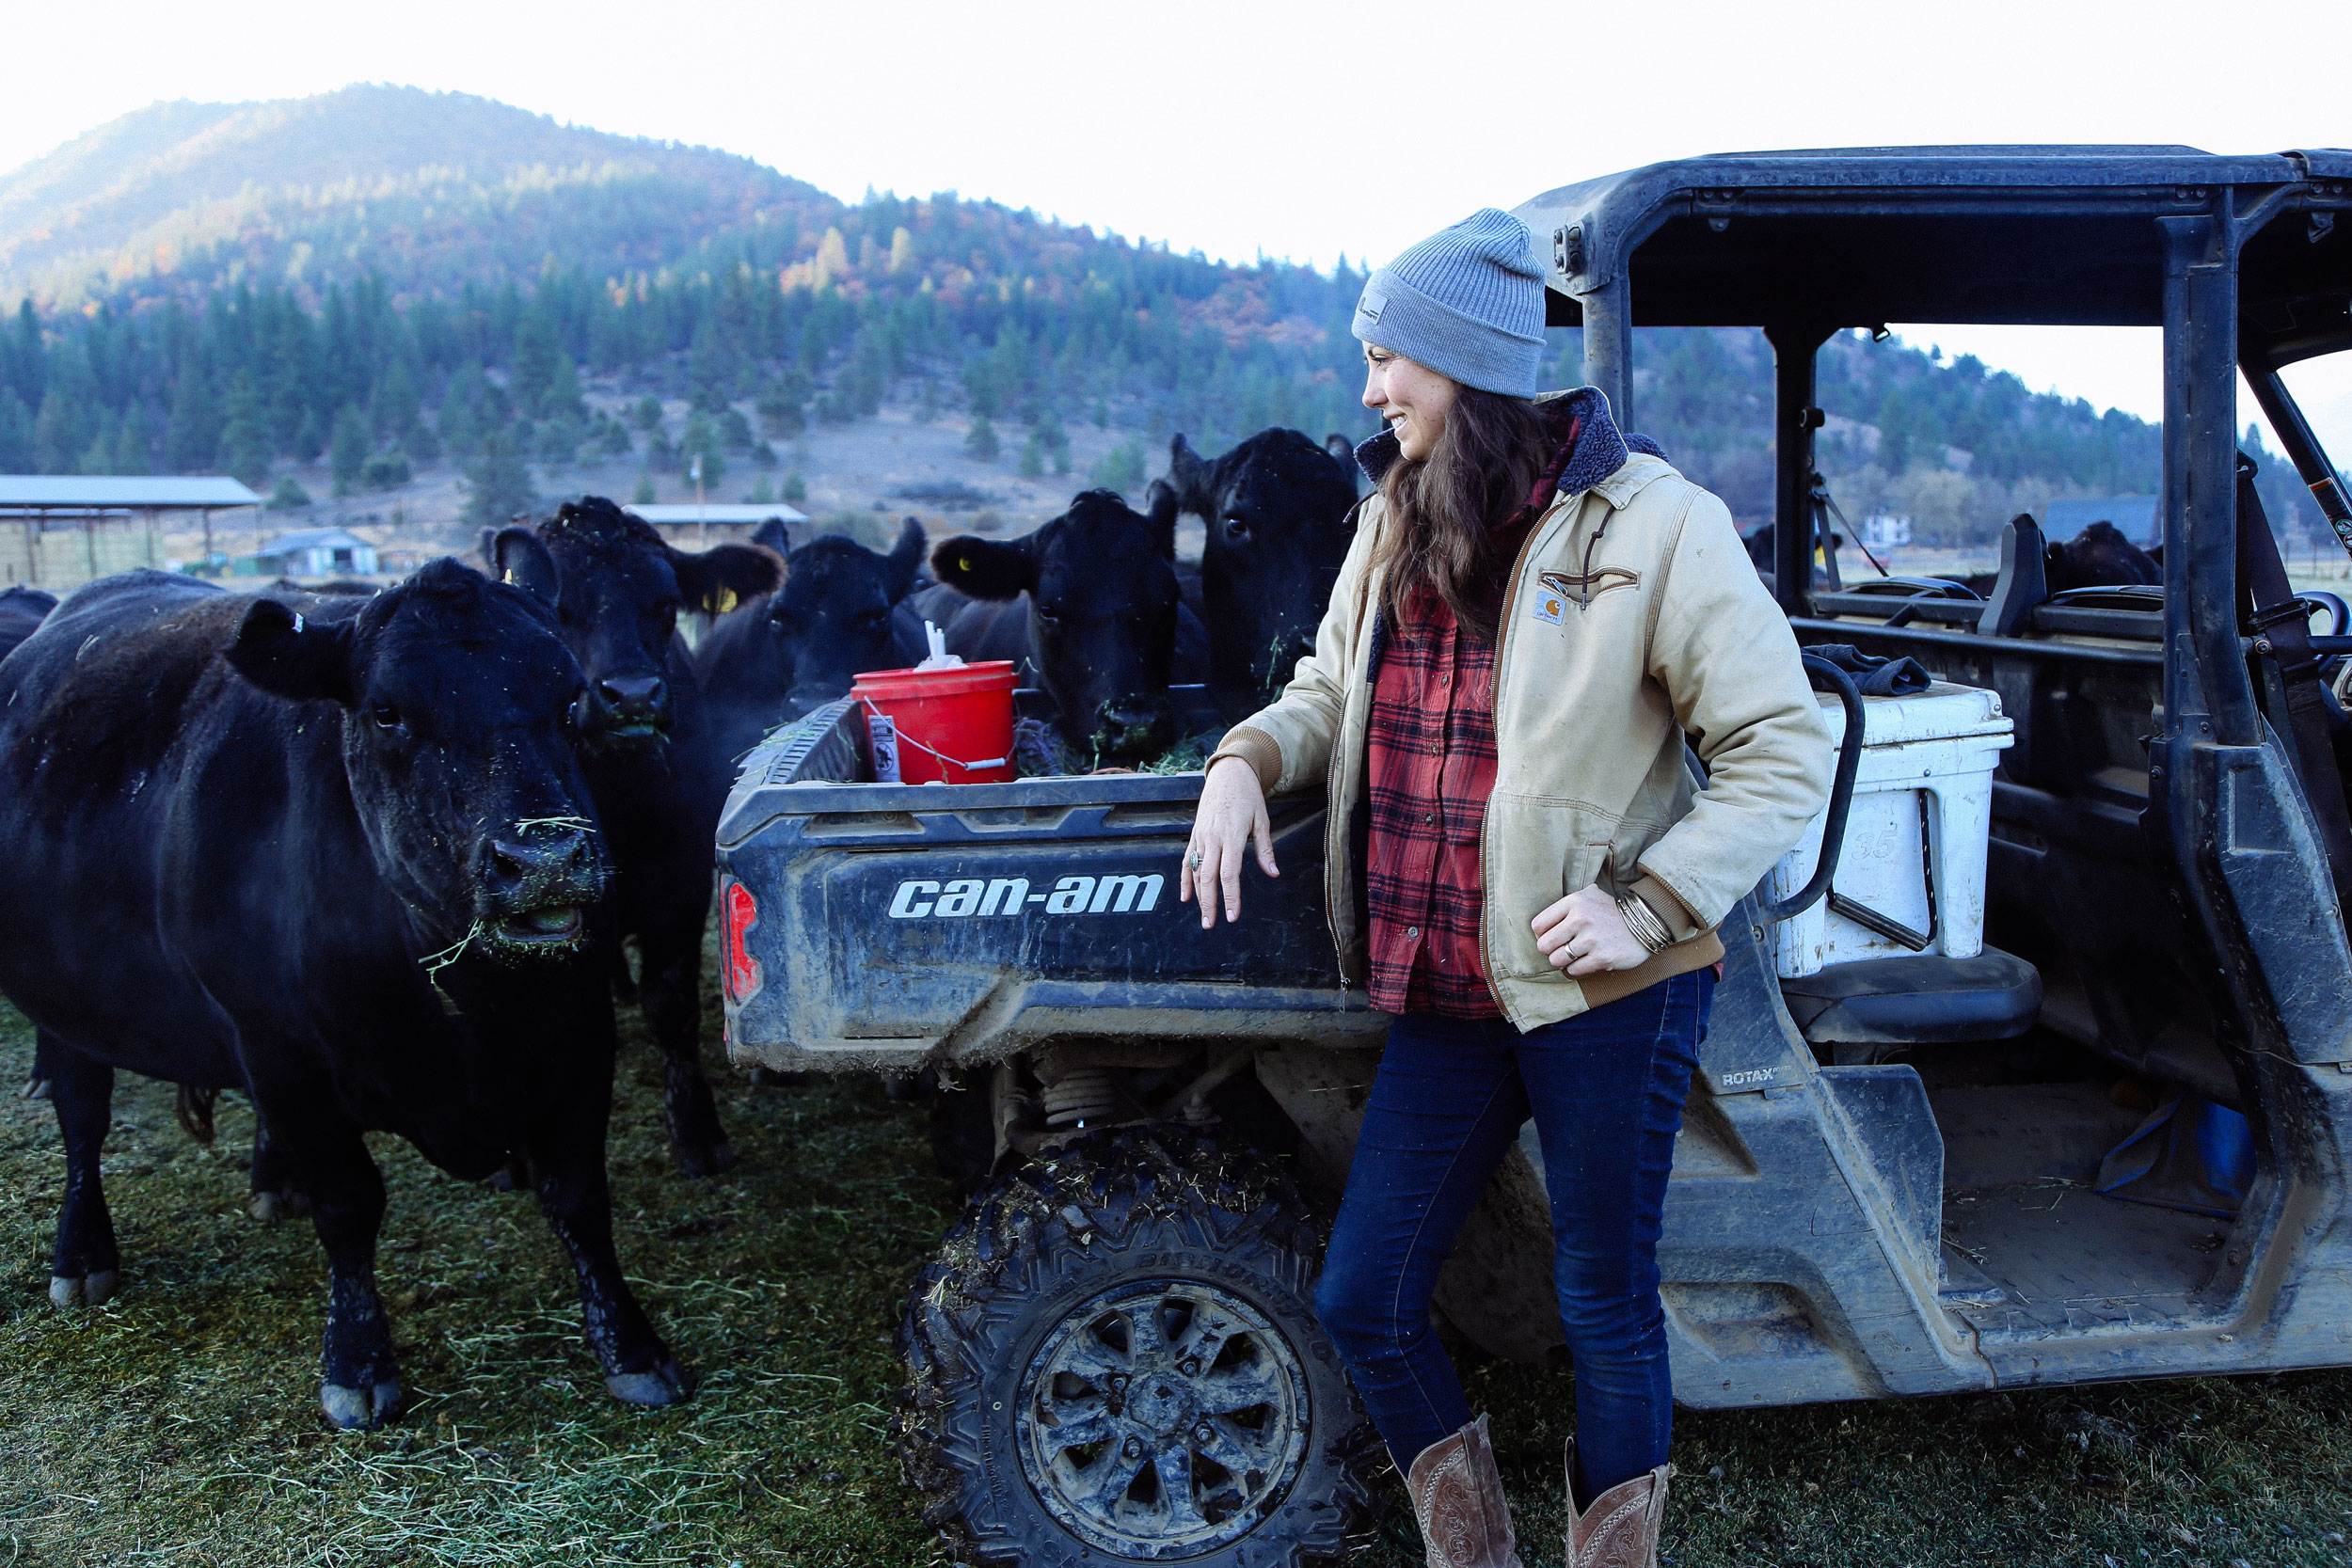 A woman by a Can-Am vehicle and a herd of cattle